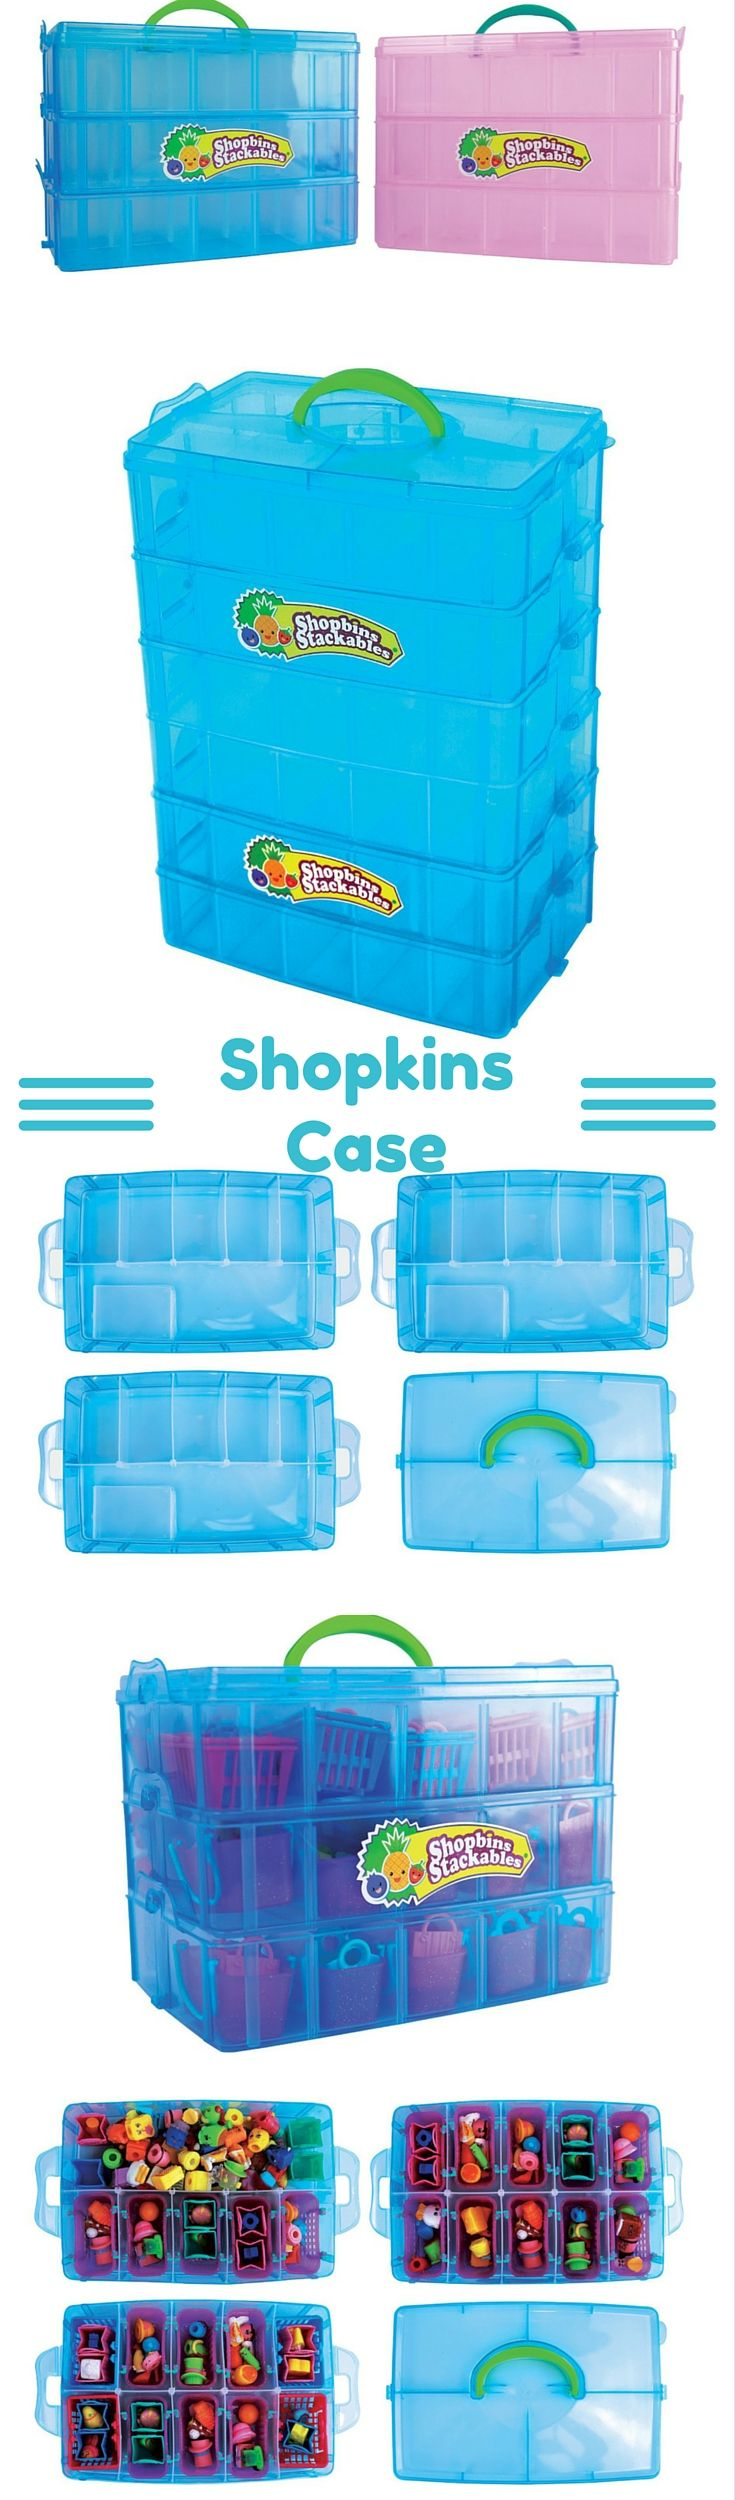 Shopbins Stackables Blue Container and Carrying Case - Compatible with All Seasons of Shopkins https://www.amazon.com/Shopbins-Stackables-Blue-Container-Carrying/dp/B01CQ2K5LI/ref=as_li_ss_tl?s=toys-and-games&ie=UTF8&qid=1467780516&sr=1-1-spons&keywords=Shopkins+Case&psc=1&linkCode=ll1&tag=herbcoloclea-20&linkId=0ff7d506d28c3e48c6638e322302166a